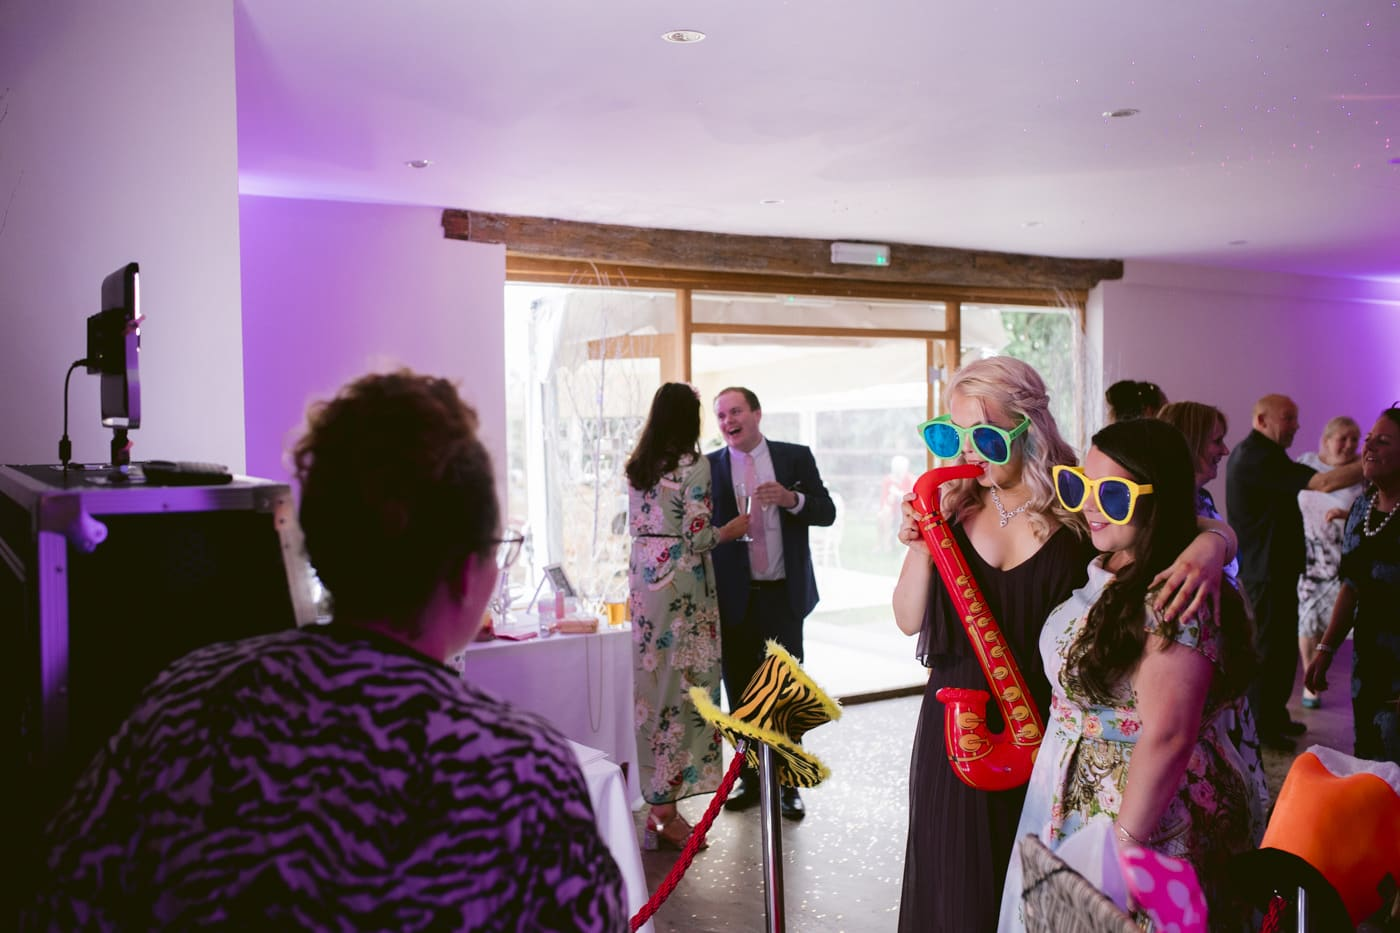 Guests wearing Sunglasses and Playing Trumpets Photograph